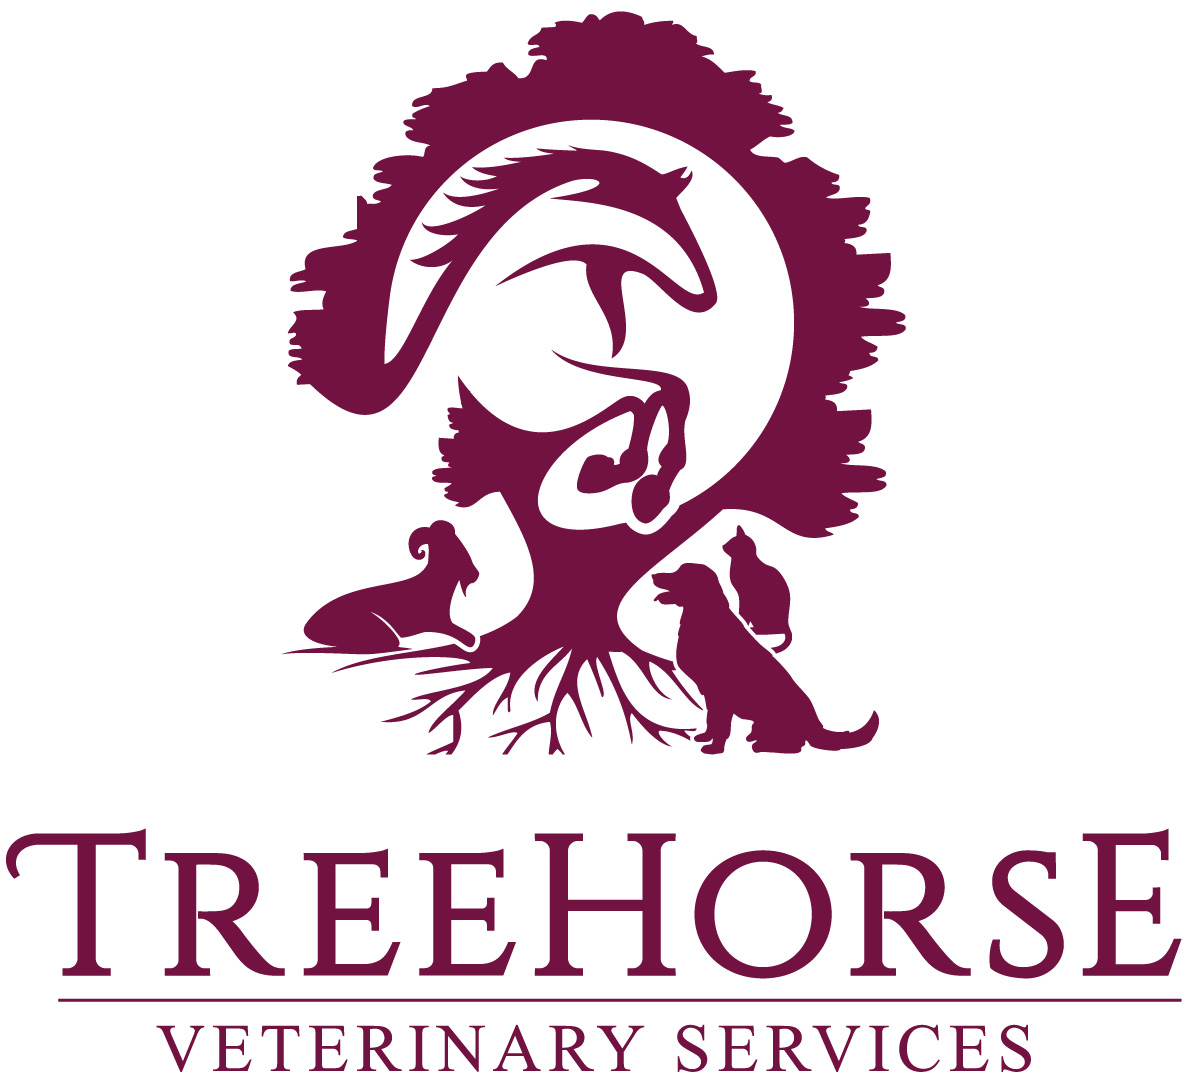 TreeHorse Veterinary Services